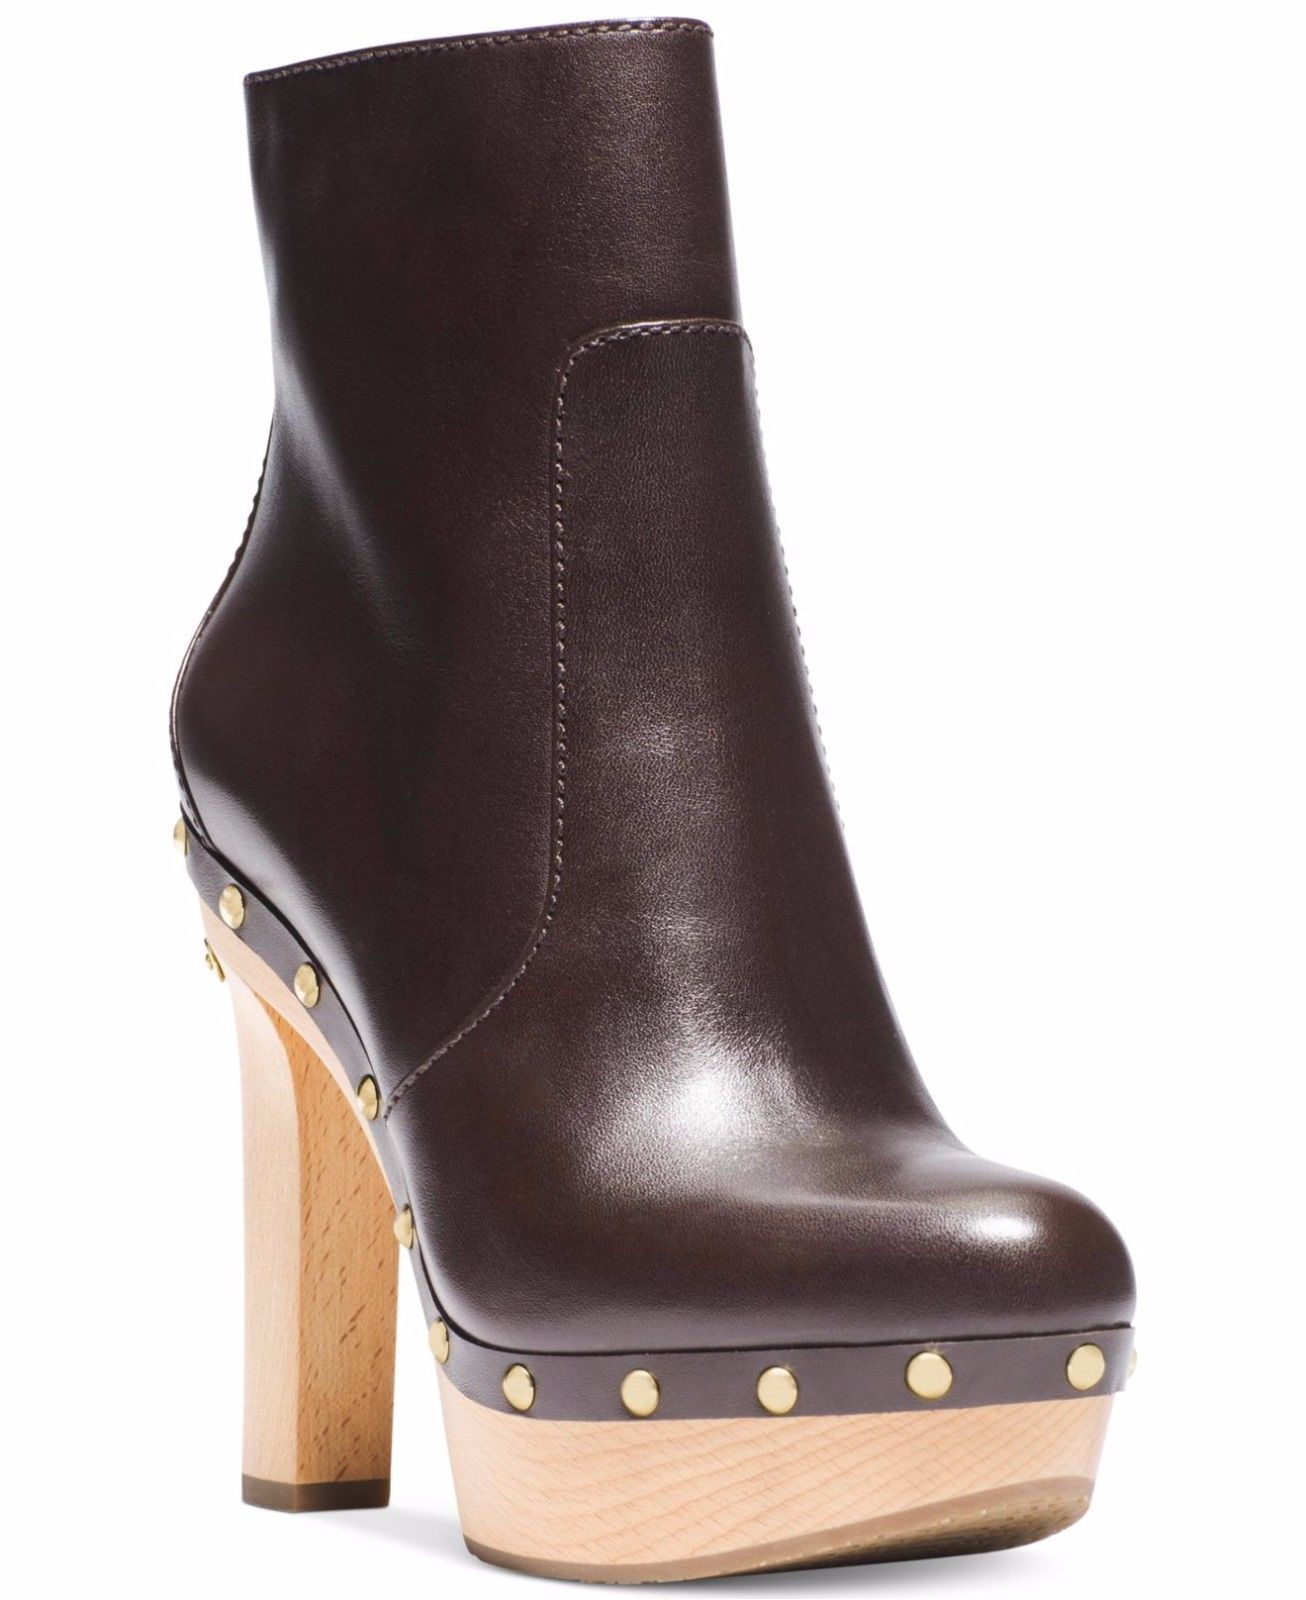 53568824e435 MICHAEL Michael Kors Women s Beatrice Platform Leather Bootie Mult Sz